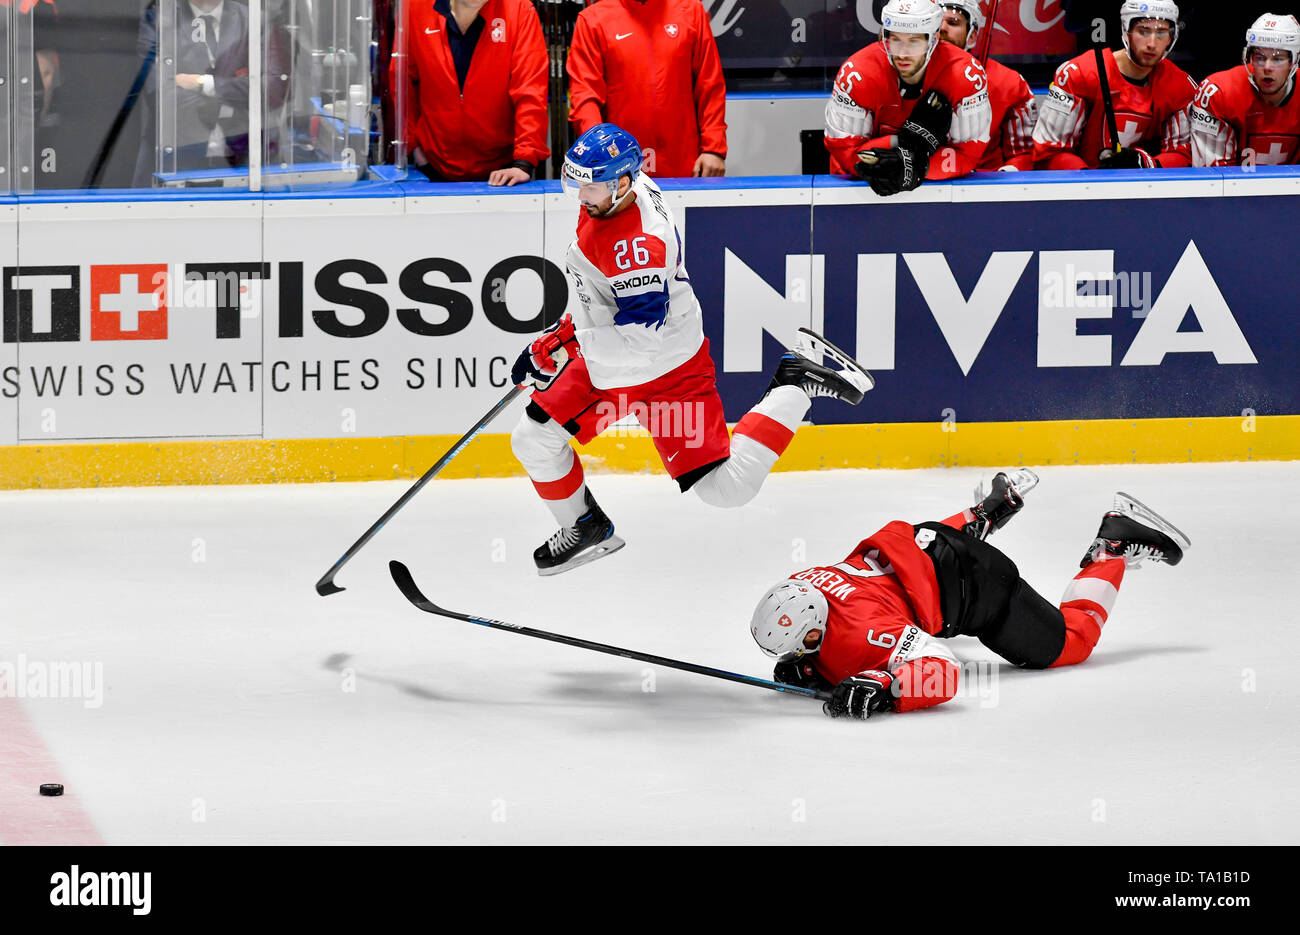 L-R Michal Repik (CZE) and Yannick Weber (SUI) in action during the match between Czech Republic and Switzerland within the 2019 IIHF World Championship in Bratislava, Slovakia, on May 21, 2019. (CTK Photo/Vit Simanek) Stock Photo